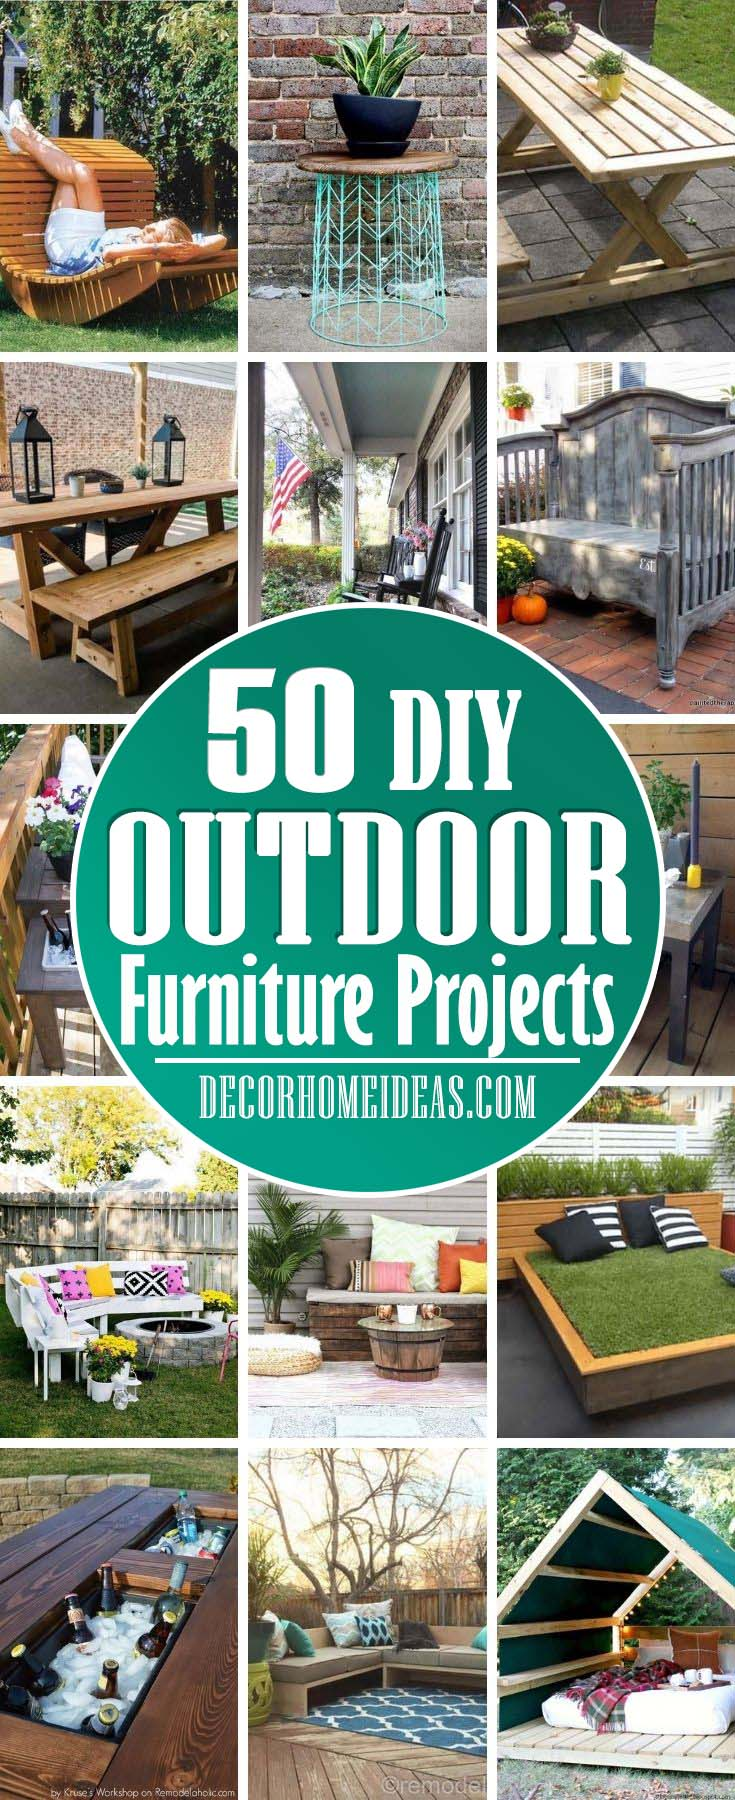 Best Outdoor Furniture Projects. If you are looking for a budget-friendly DIY outdoor furniture project that could be done easily, we have selected the best ones for you. #diy #outdoor #furniture #projects #decorhomeideas